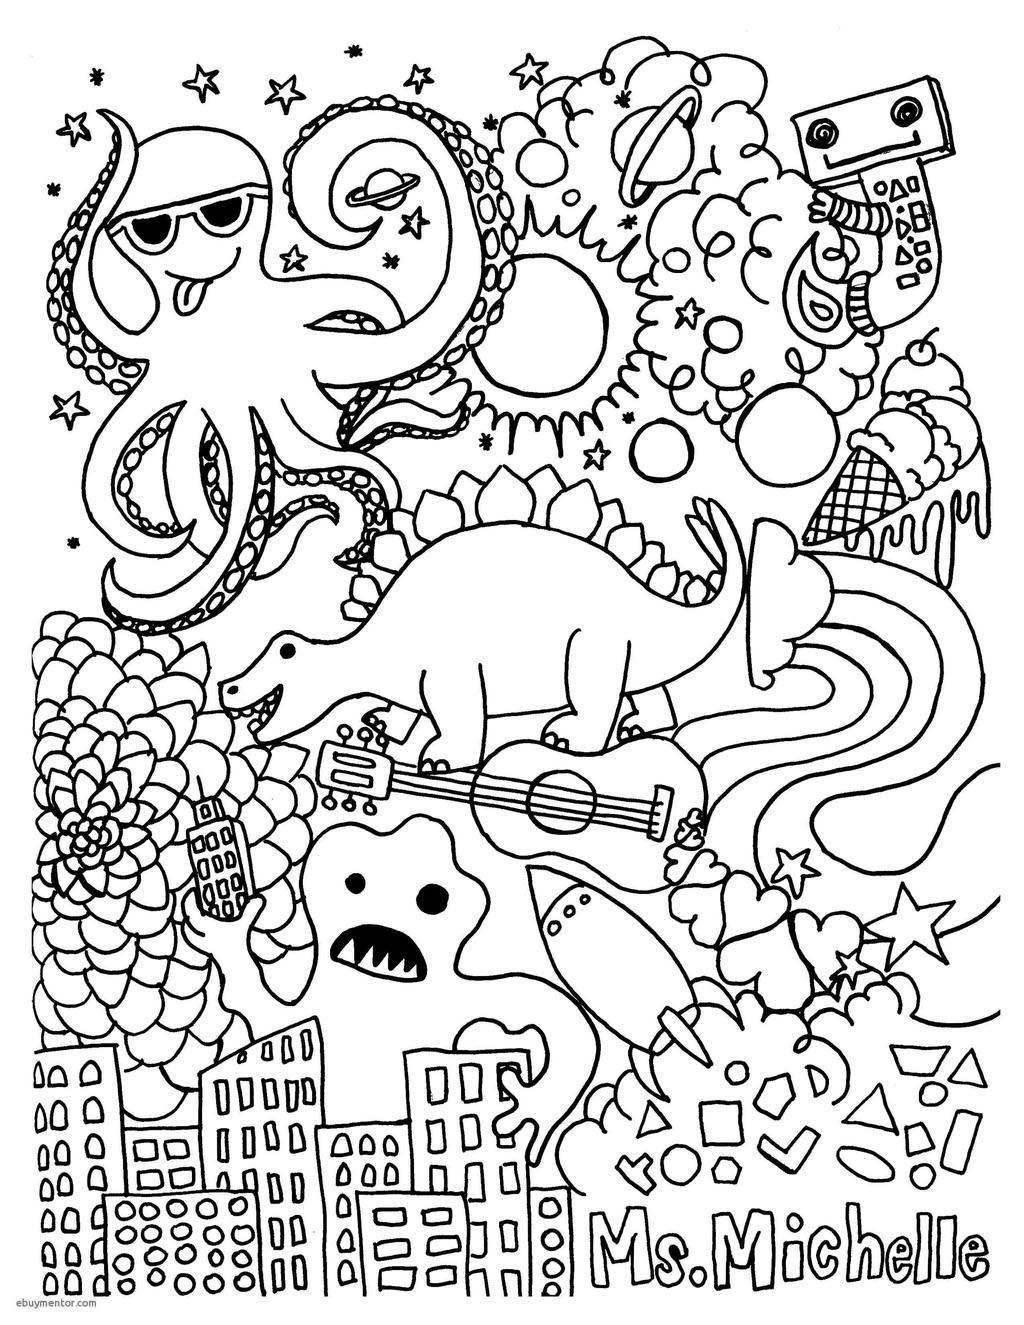 Nativity Coloring Pages Kids Characters - Free Printable Coloring Pages